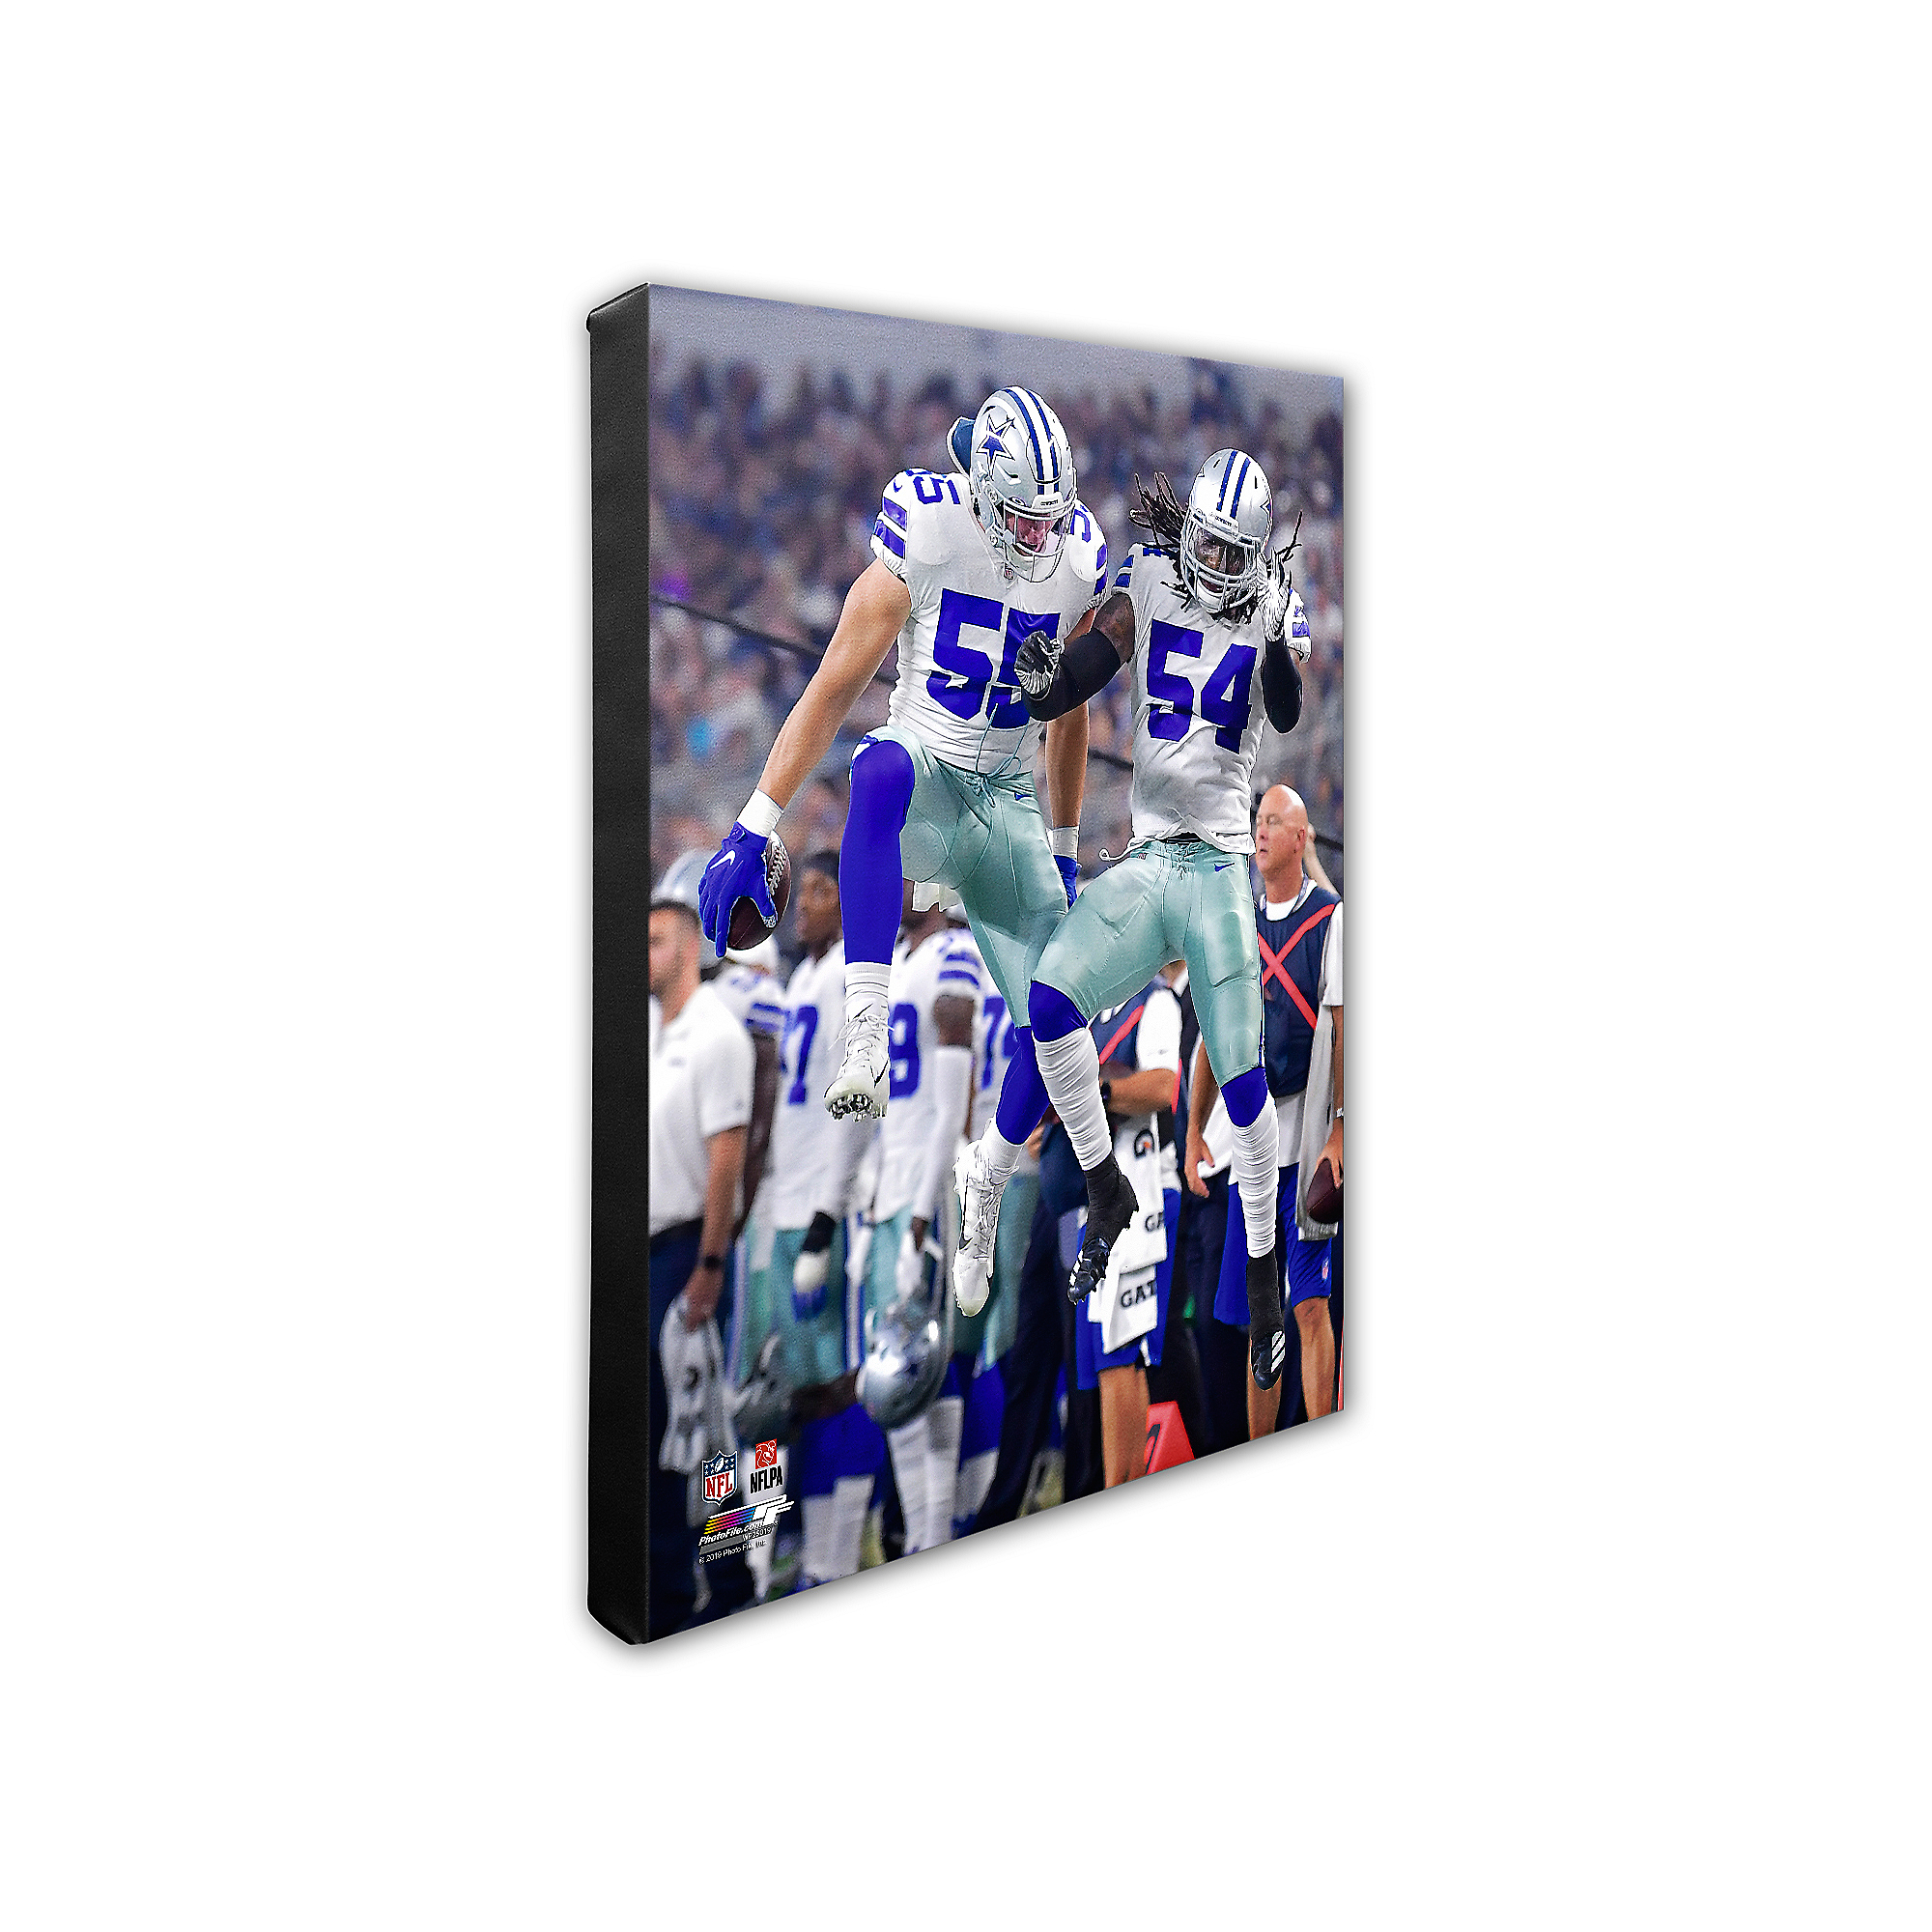 Dallas Cowboys 16x20 Leighton Vander Esch/Jaylon Smith Action Canvas